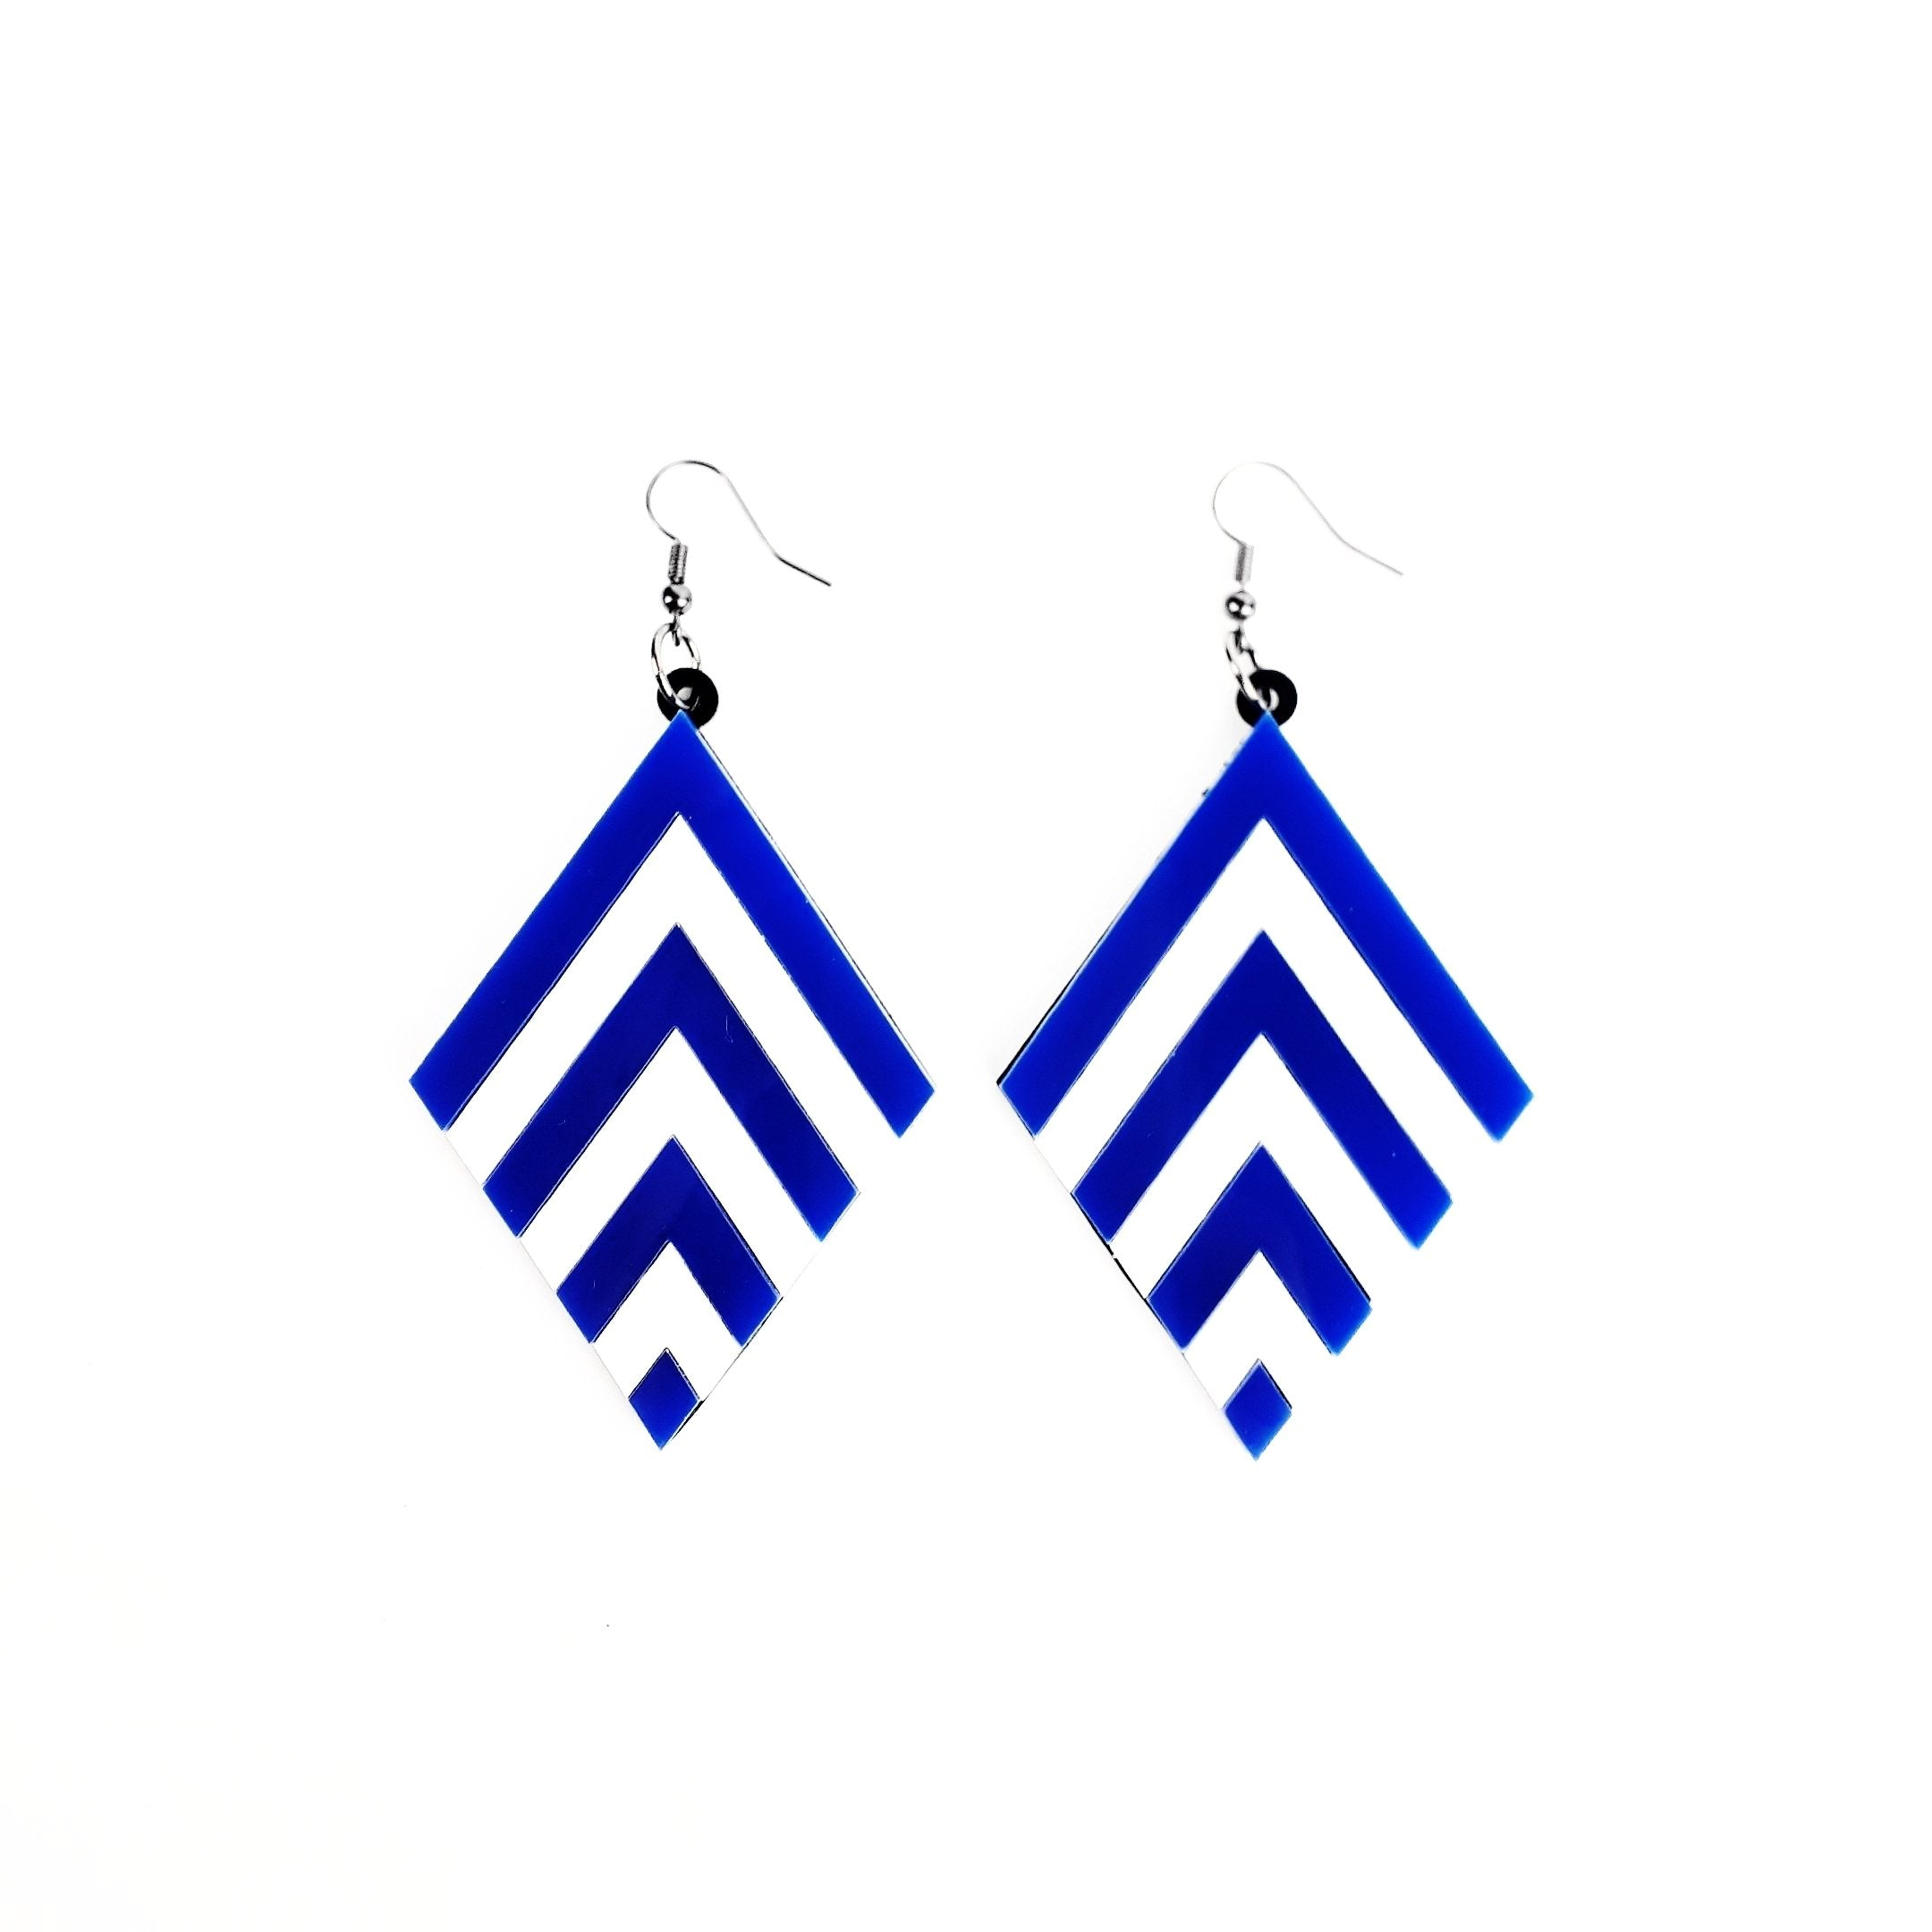 Blue Chevron earrings